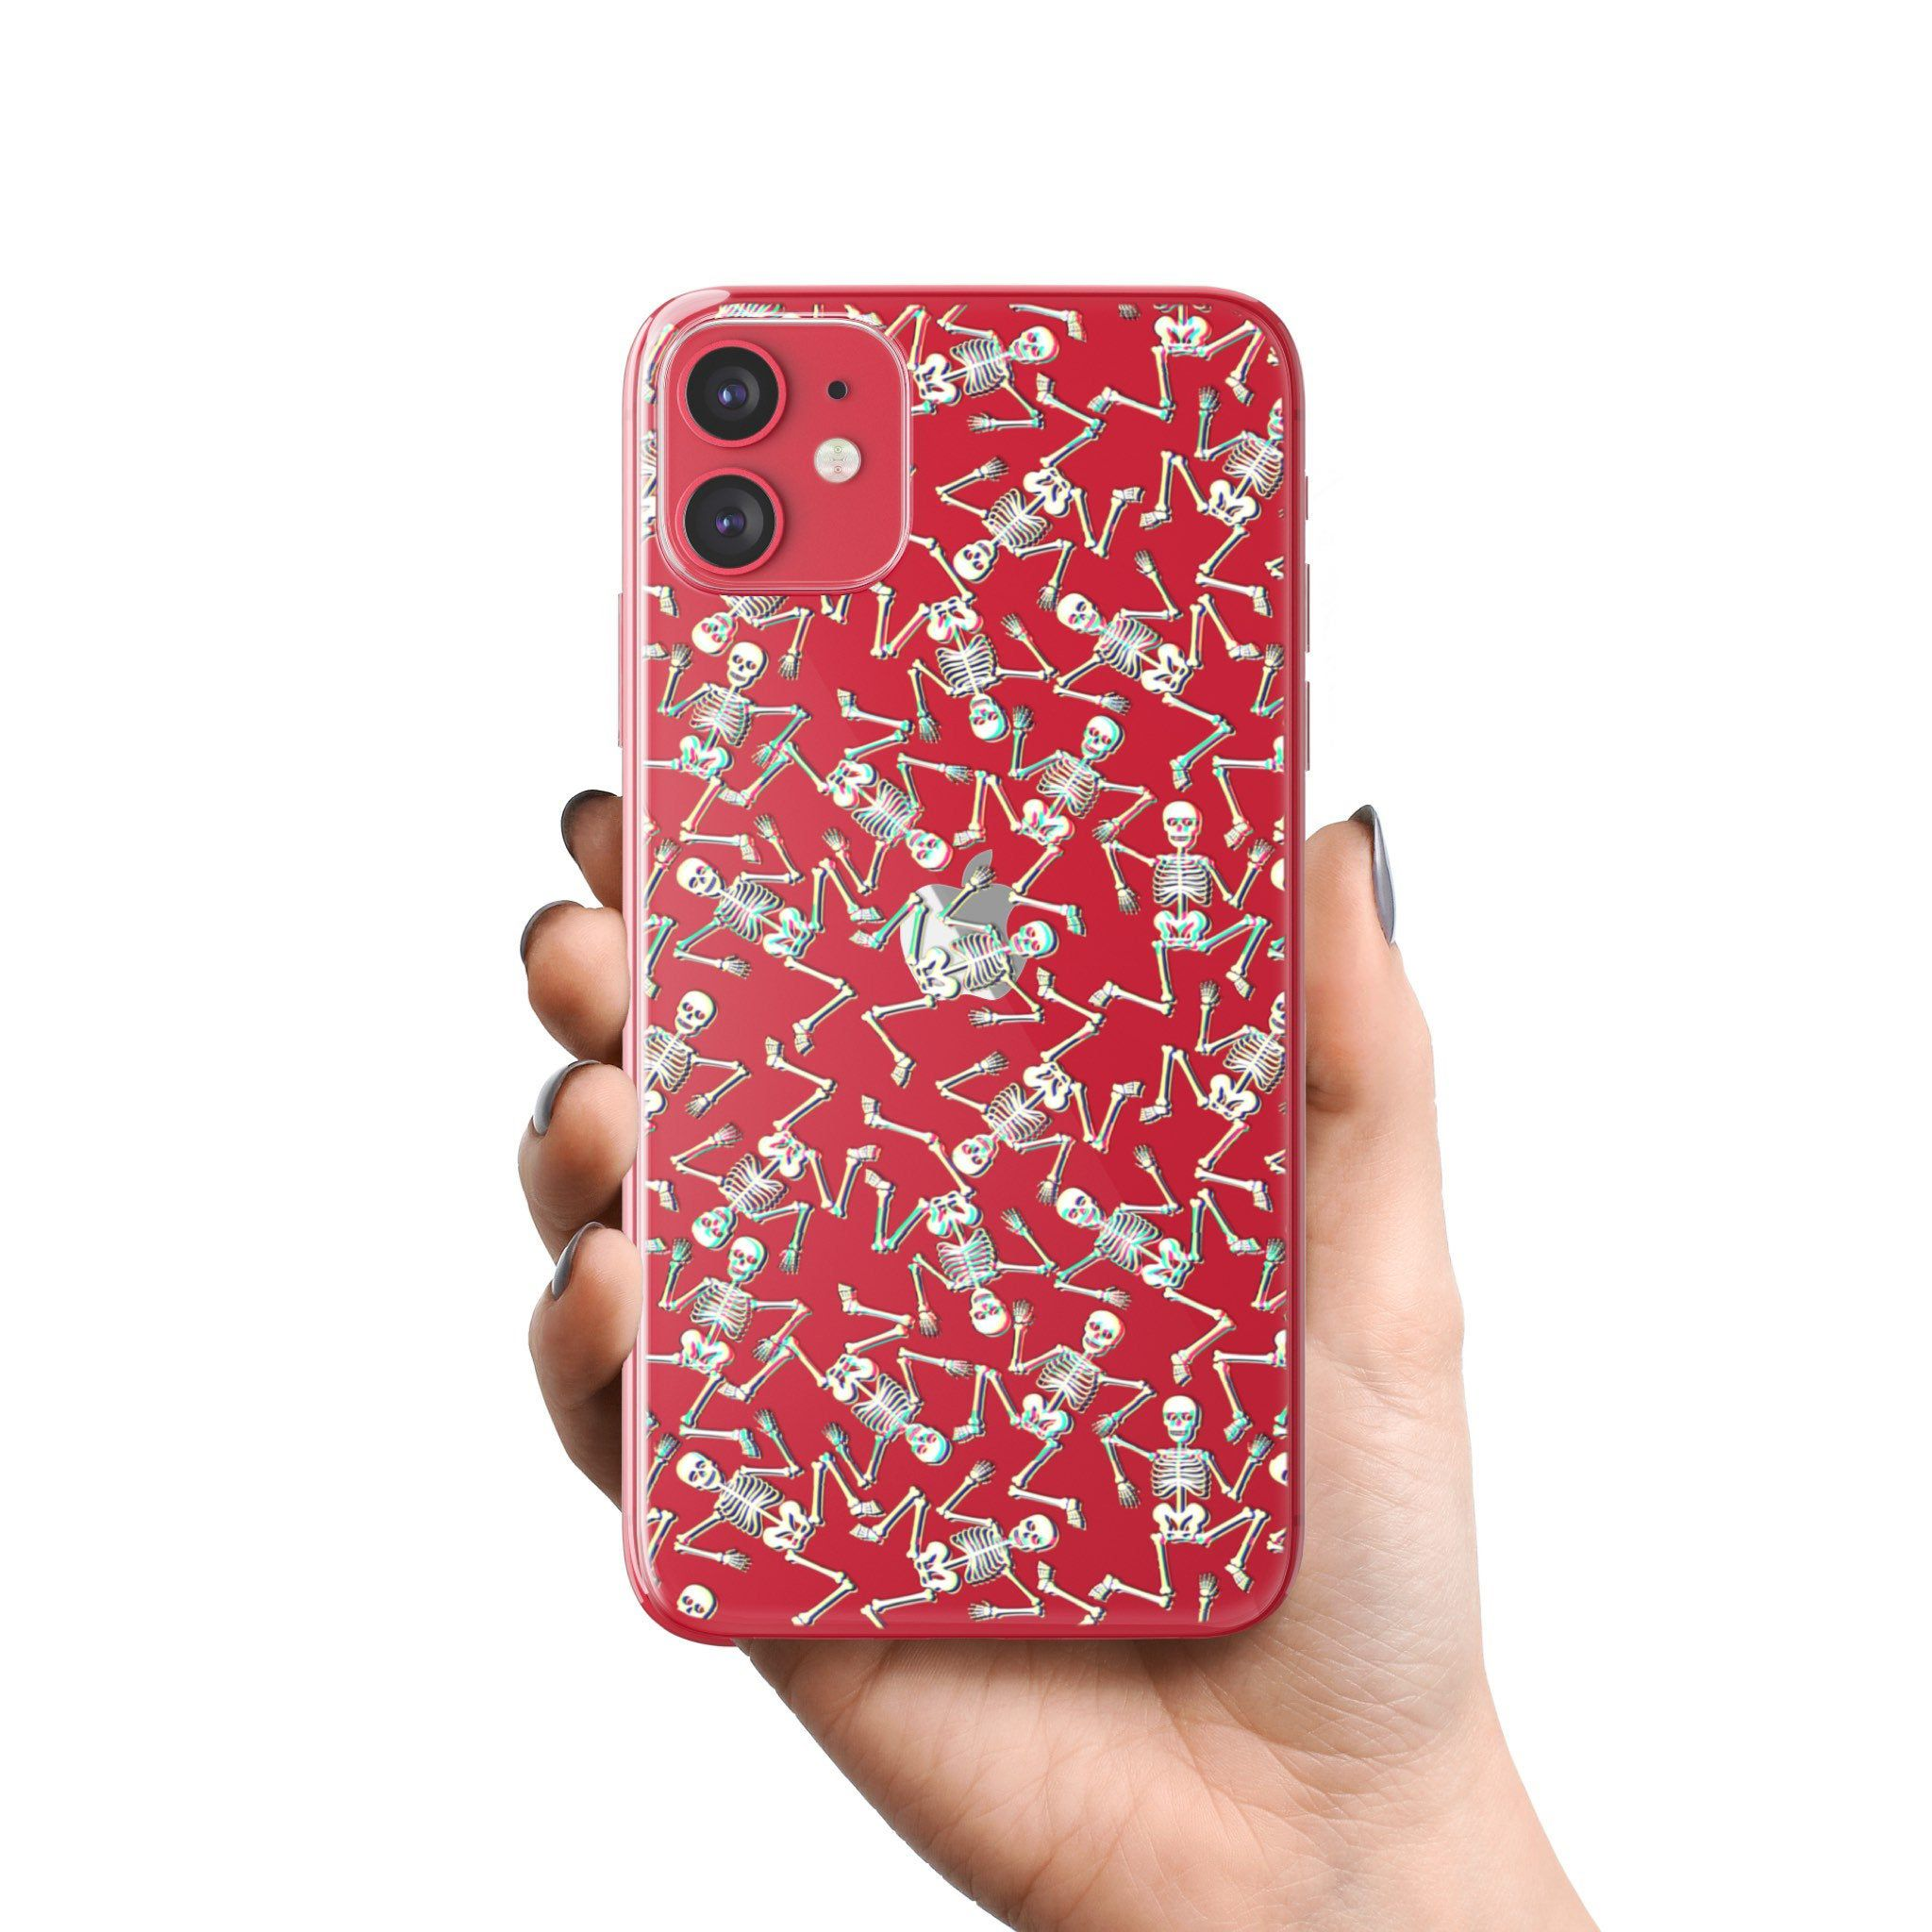 3d glitch skeleton phone case for iphone 11 pro max xr xs